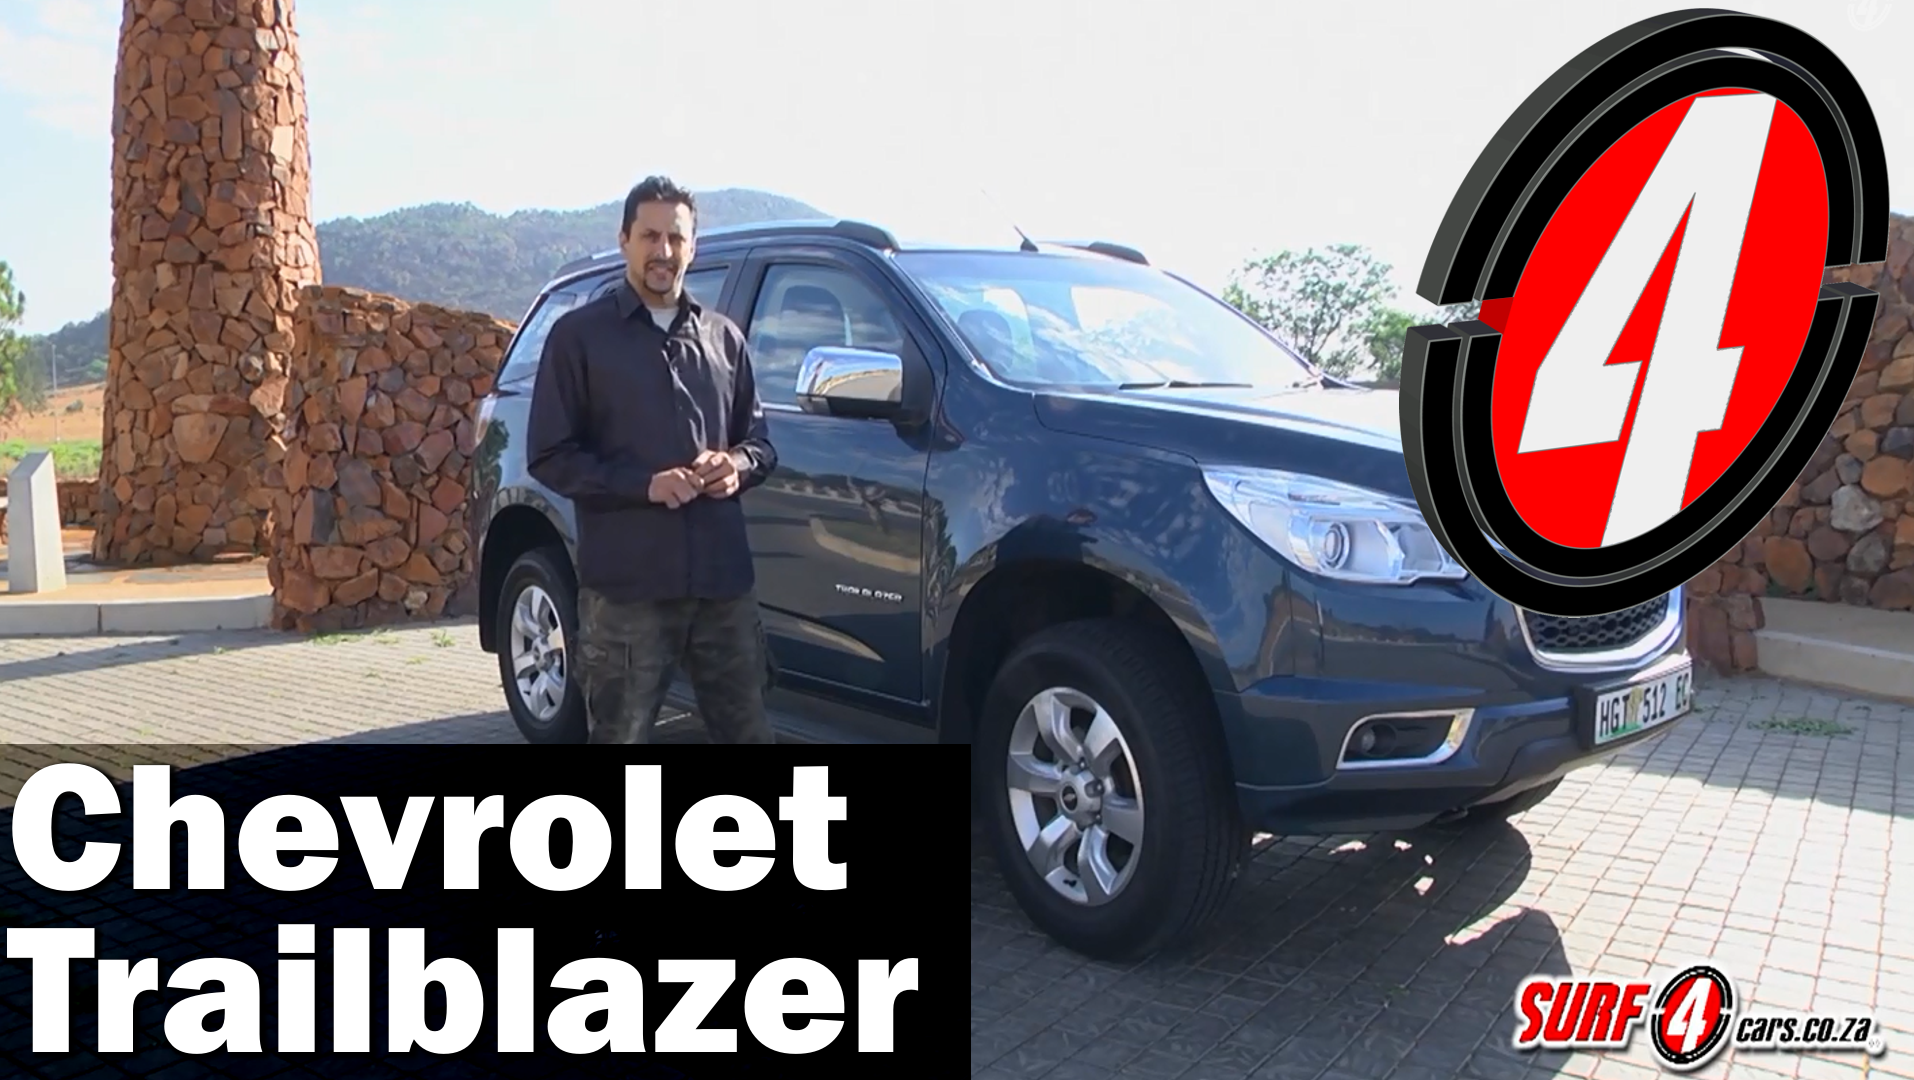 2014 Chevrolet Trailblazer : Video Review